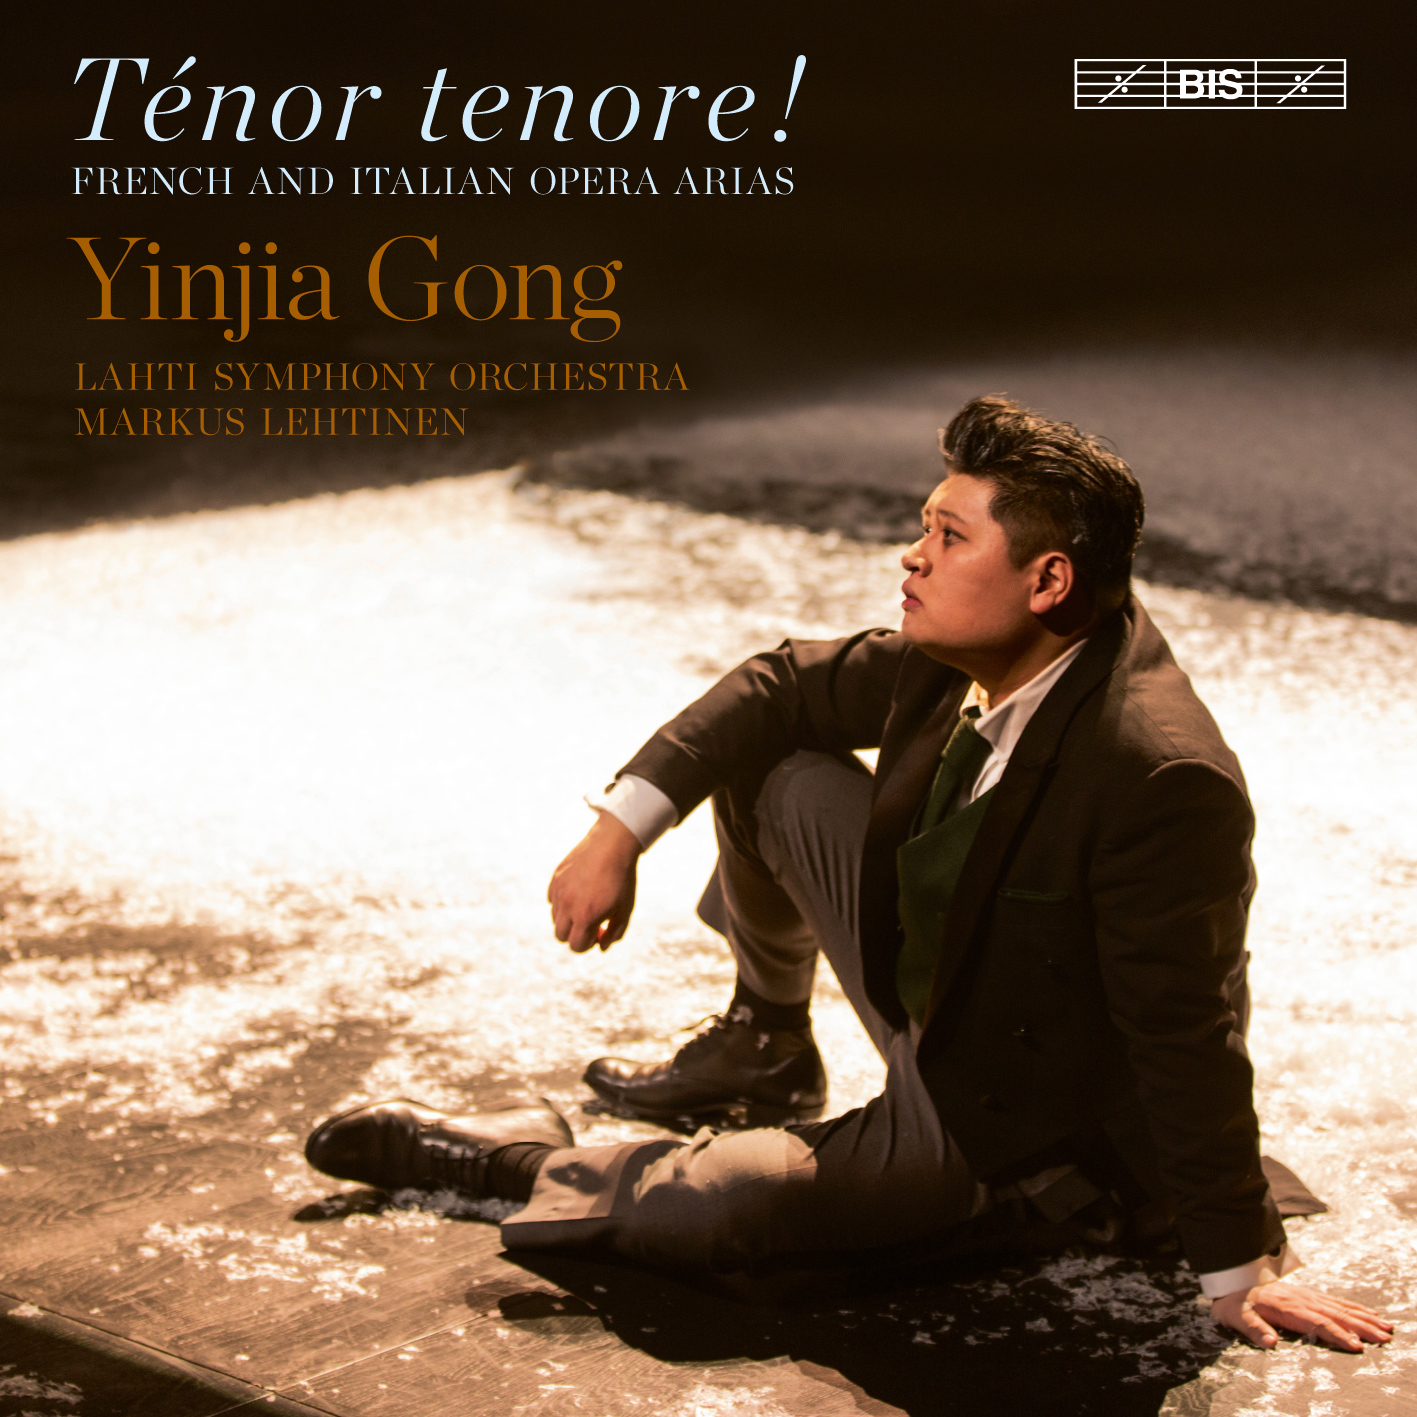 Tènor tenore! French and Italian opera arias